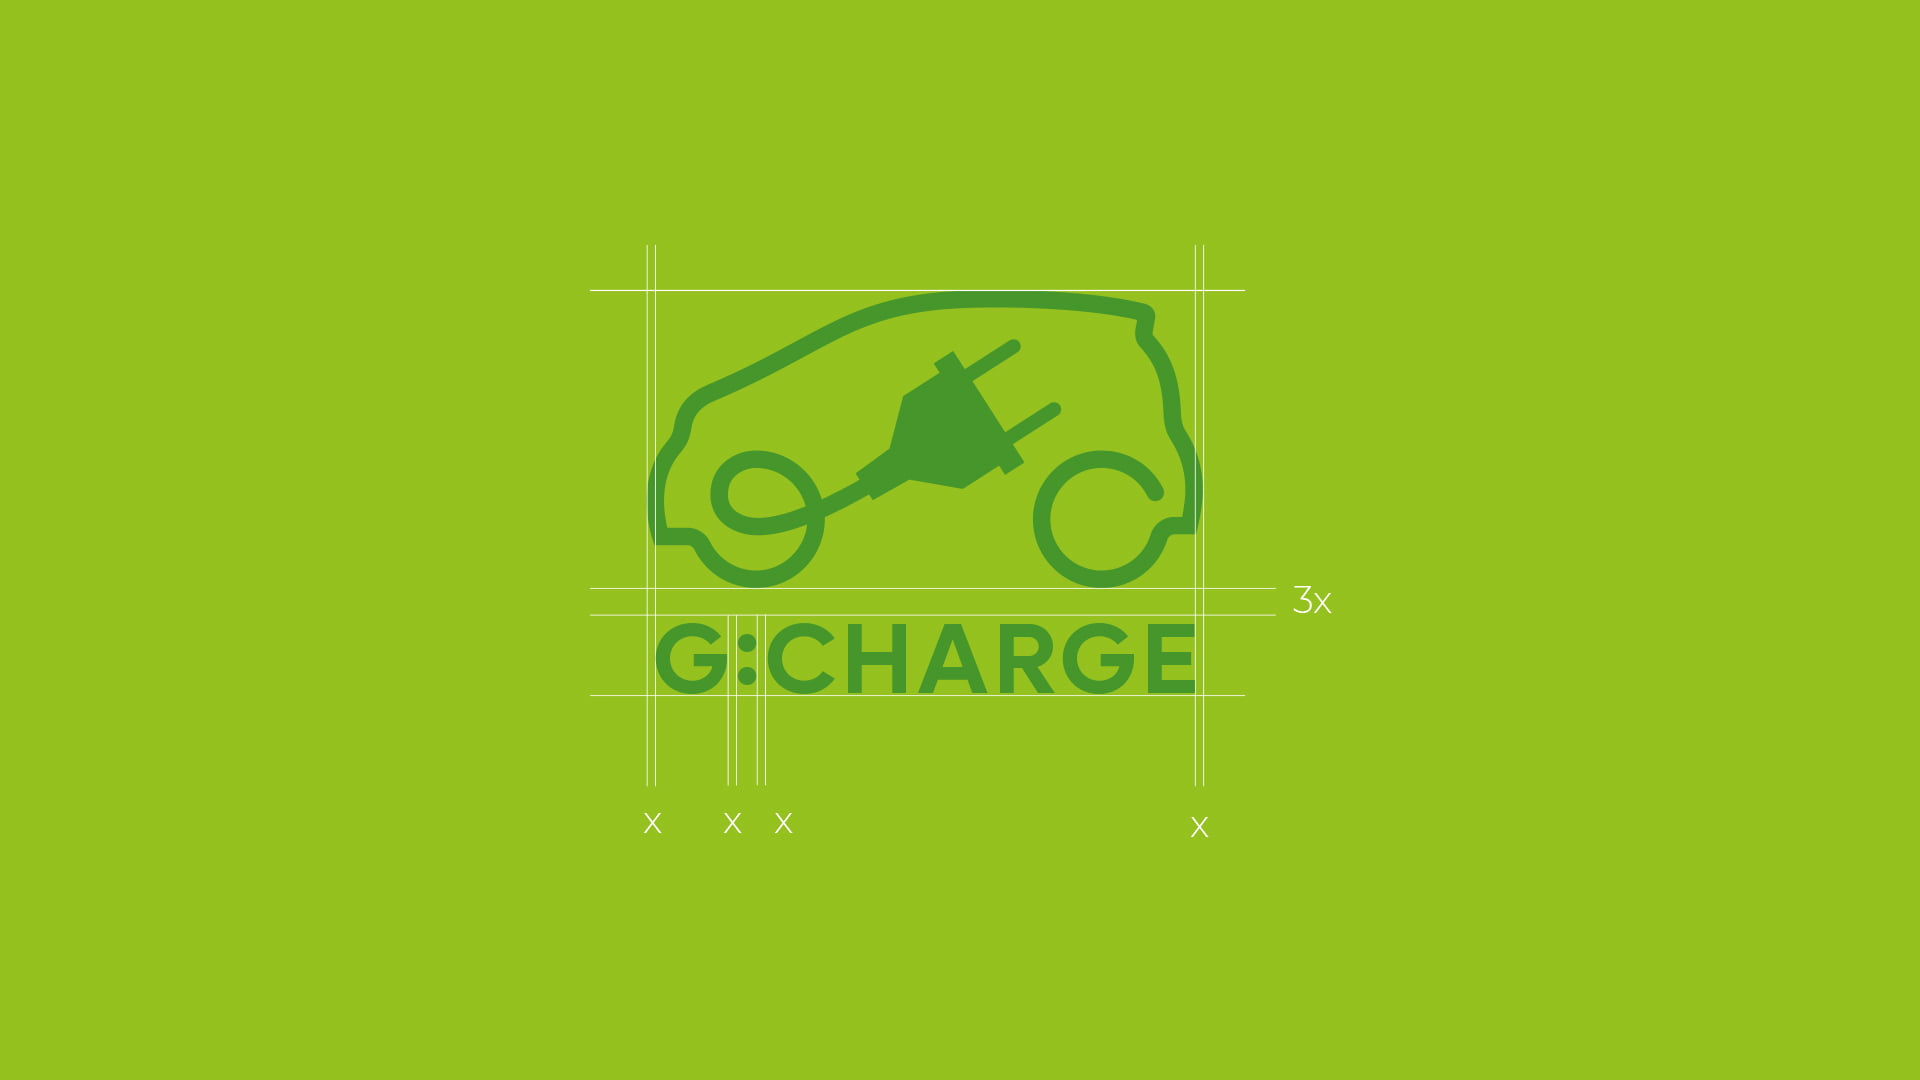 G:Charge